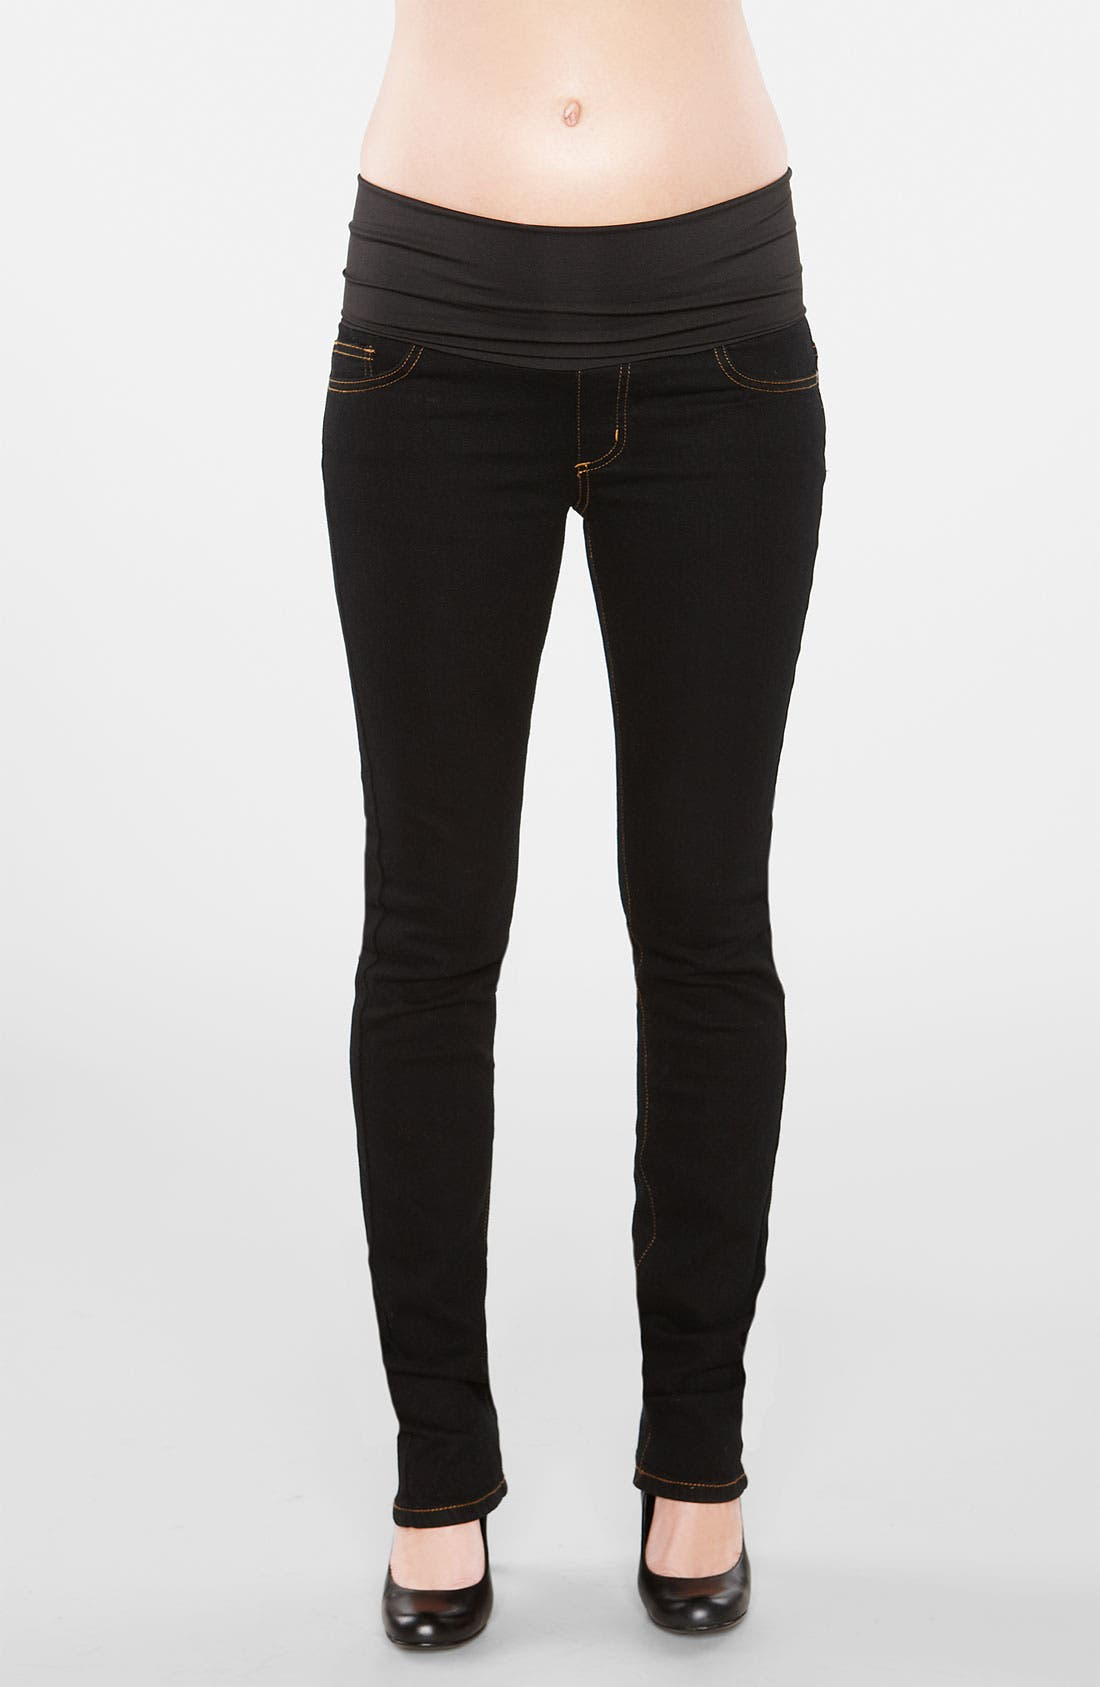 Main Image - Maternal America Straight Leg Stretch Maternity Jeans